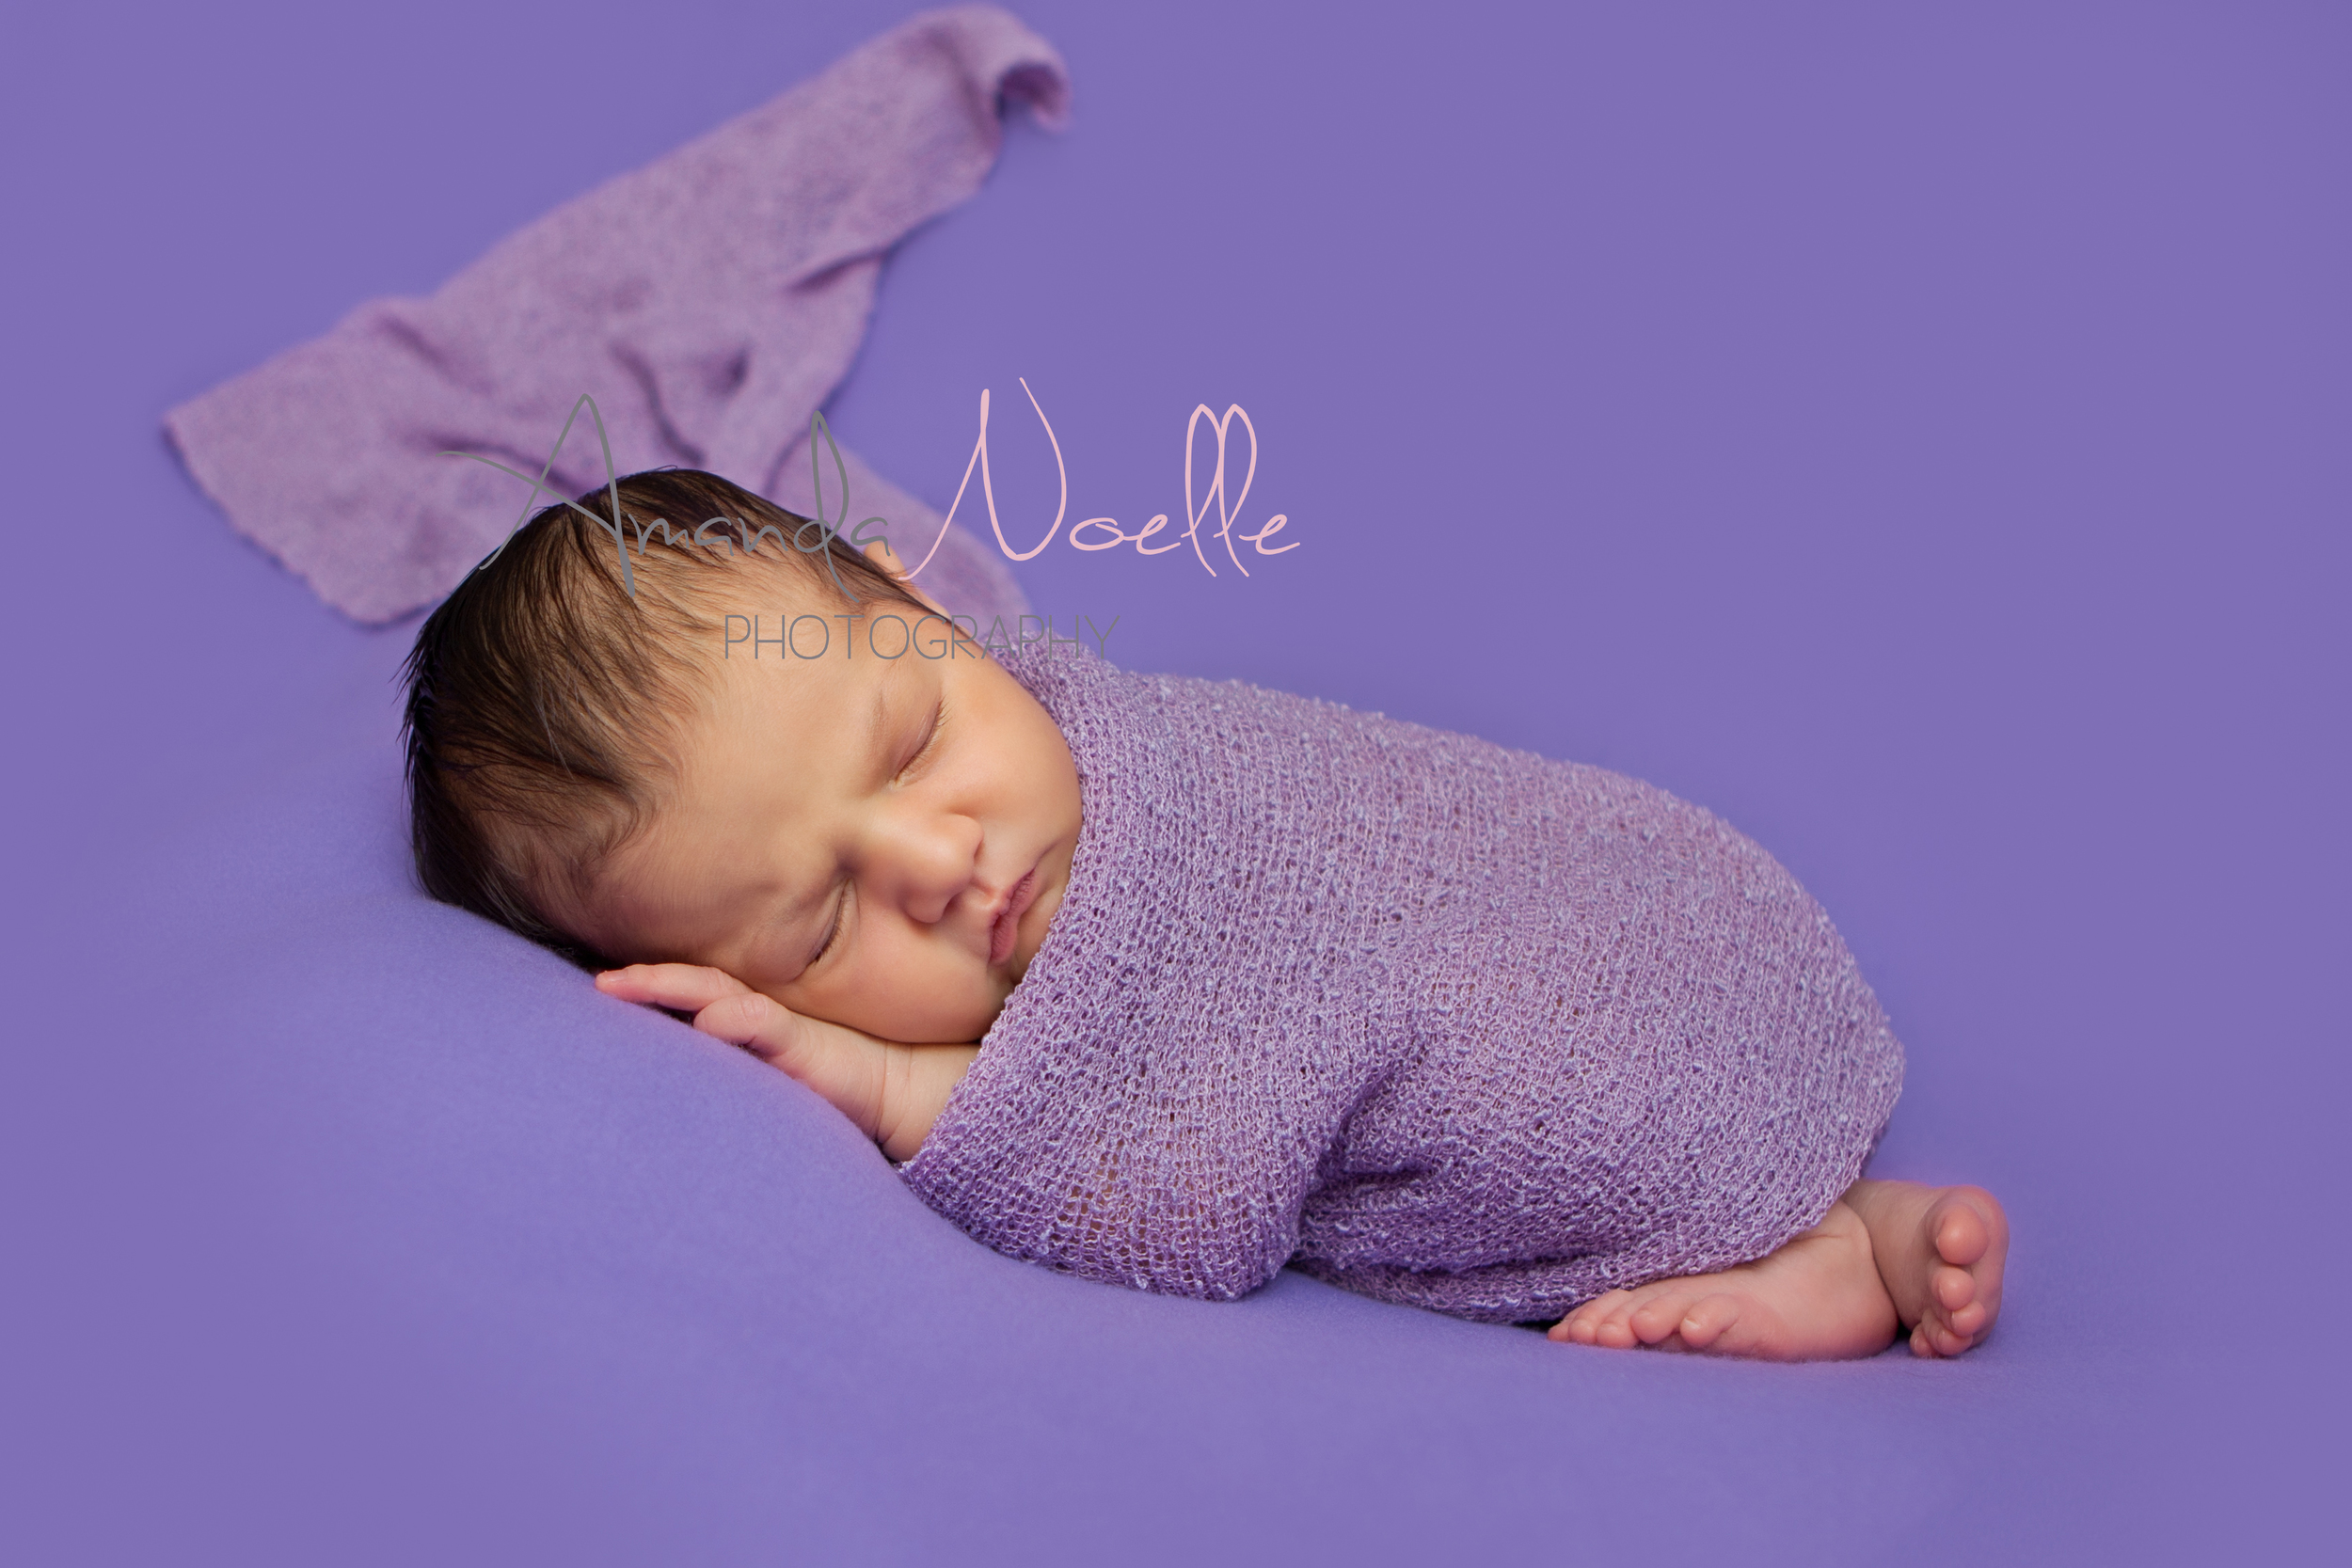 Newborn baby girl, purple background fabric, purple stretch wrap draped, sleeping pose on beanbag, by Westchester, New York Newborn Photographer, Amanda Noelle Photography